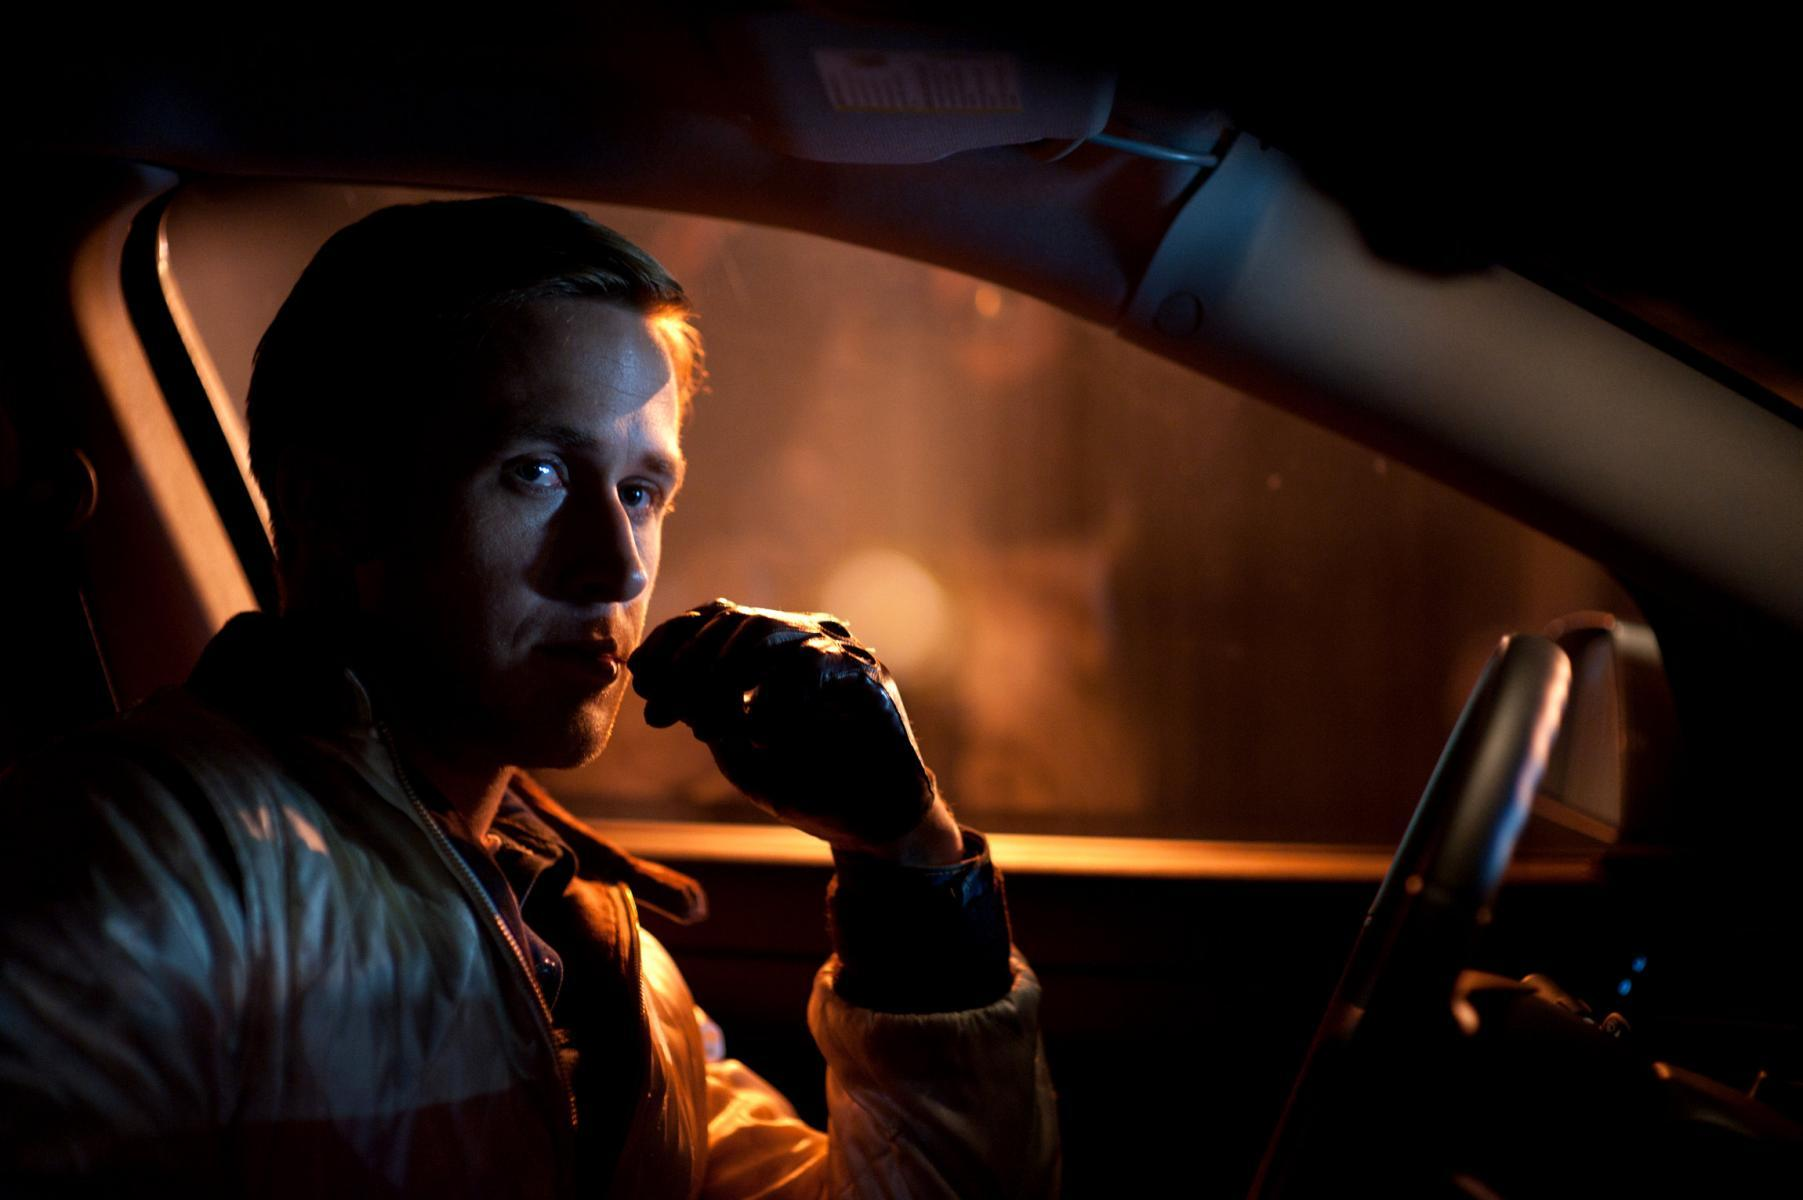 Drive: Movie Review